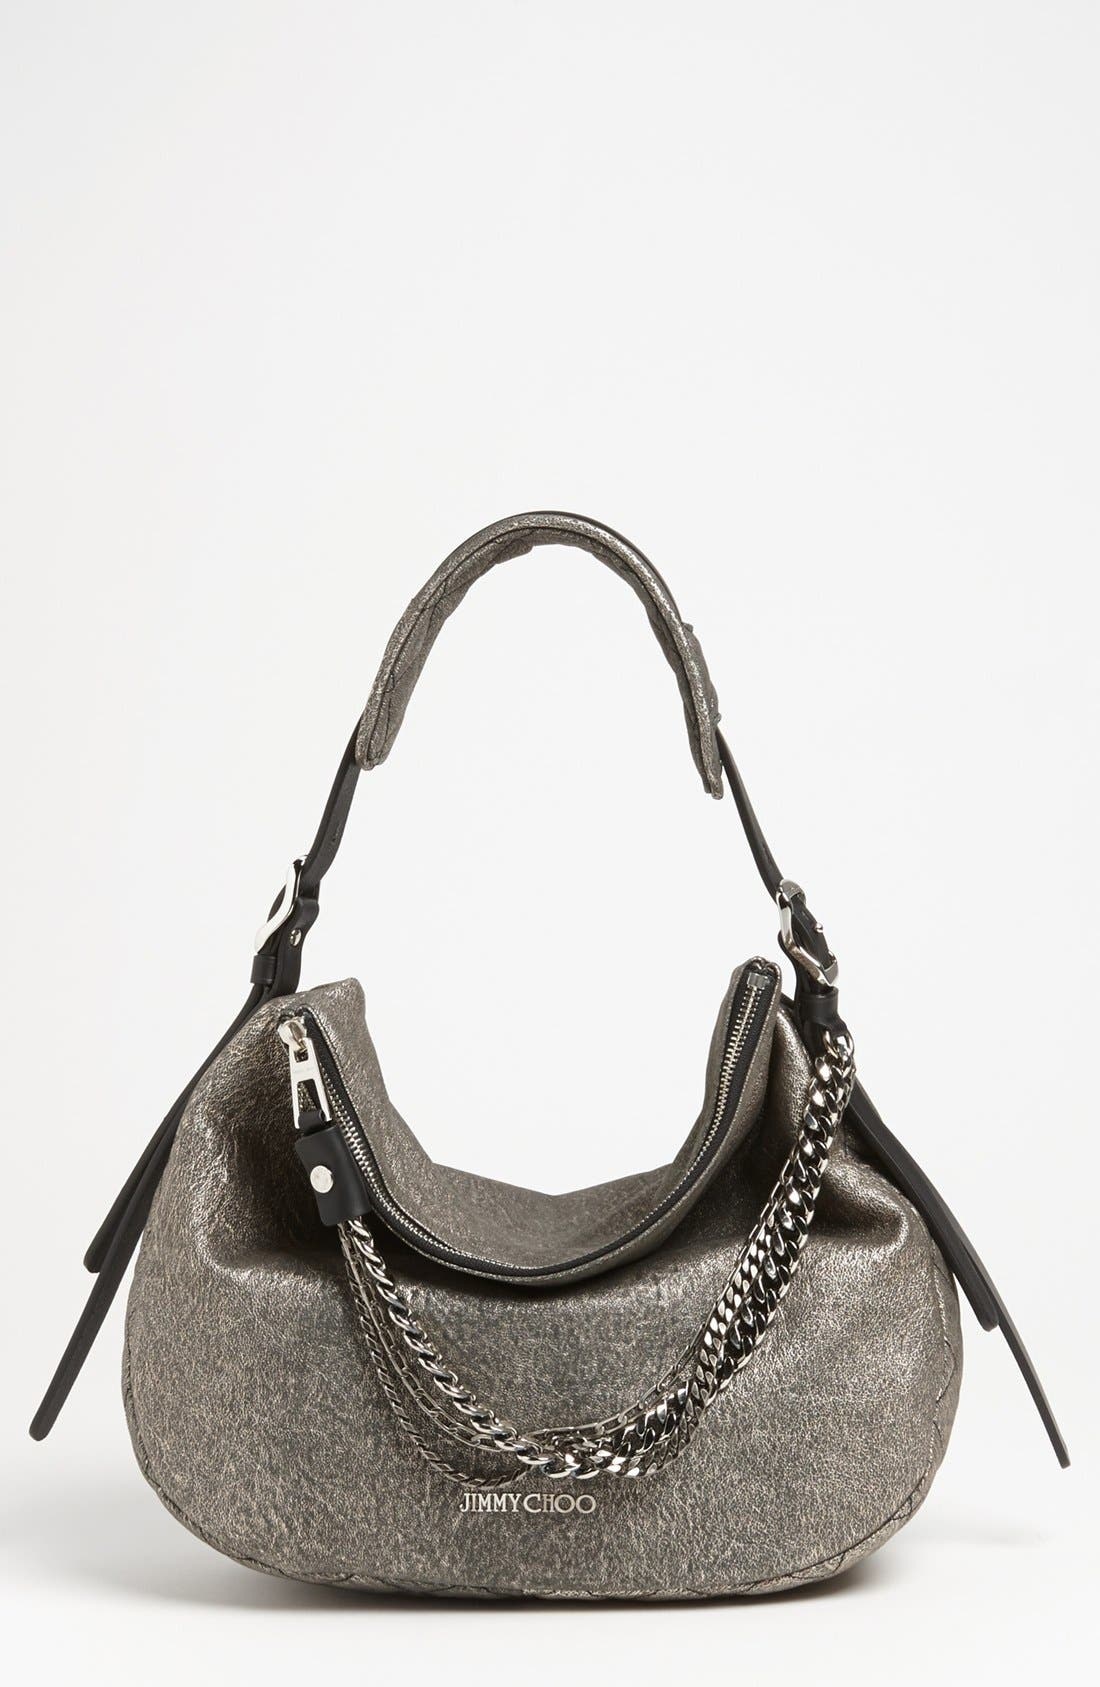 Main Image - Jimmy Choo 'Small Boho' Suede Hobo